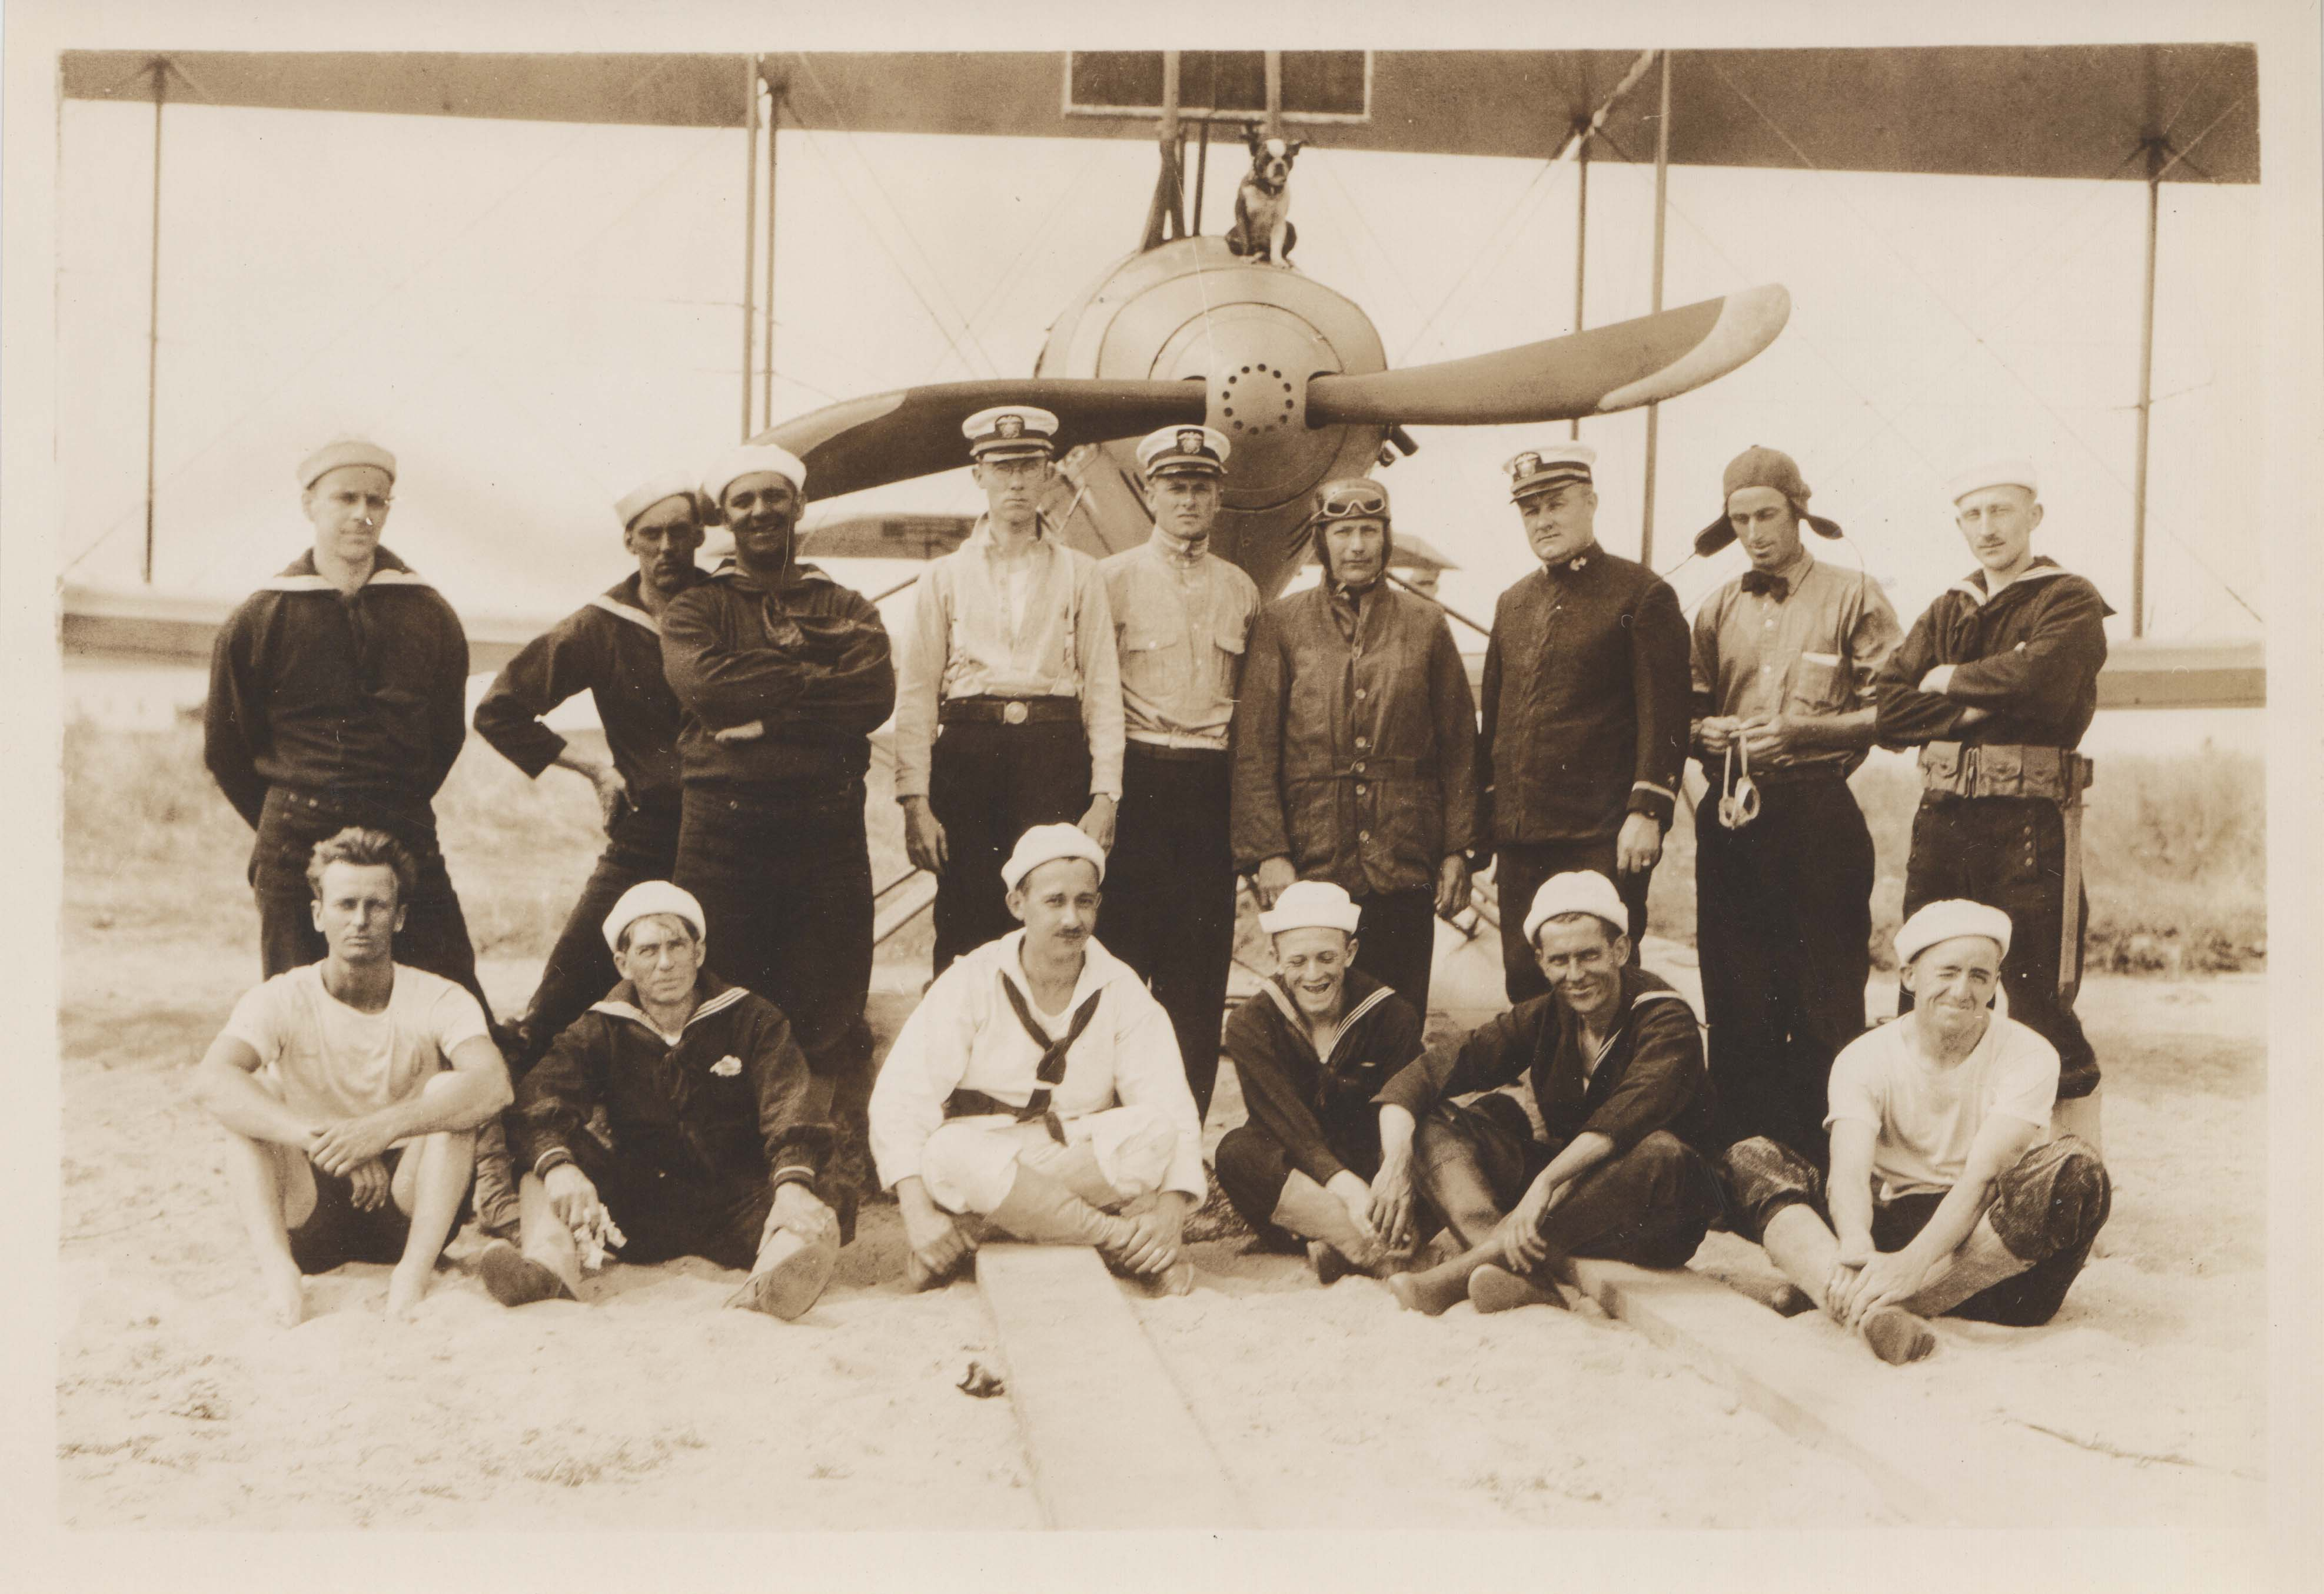 0114 Officers and Pilots in front of plane